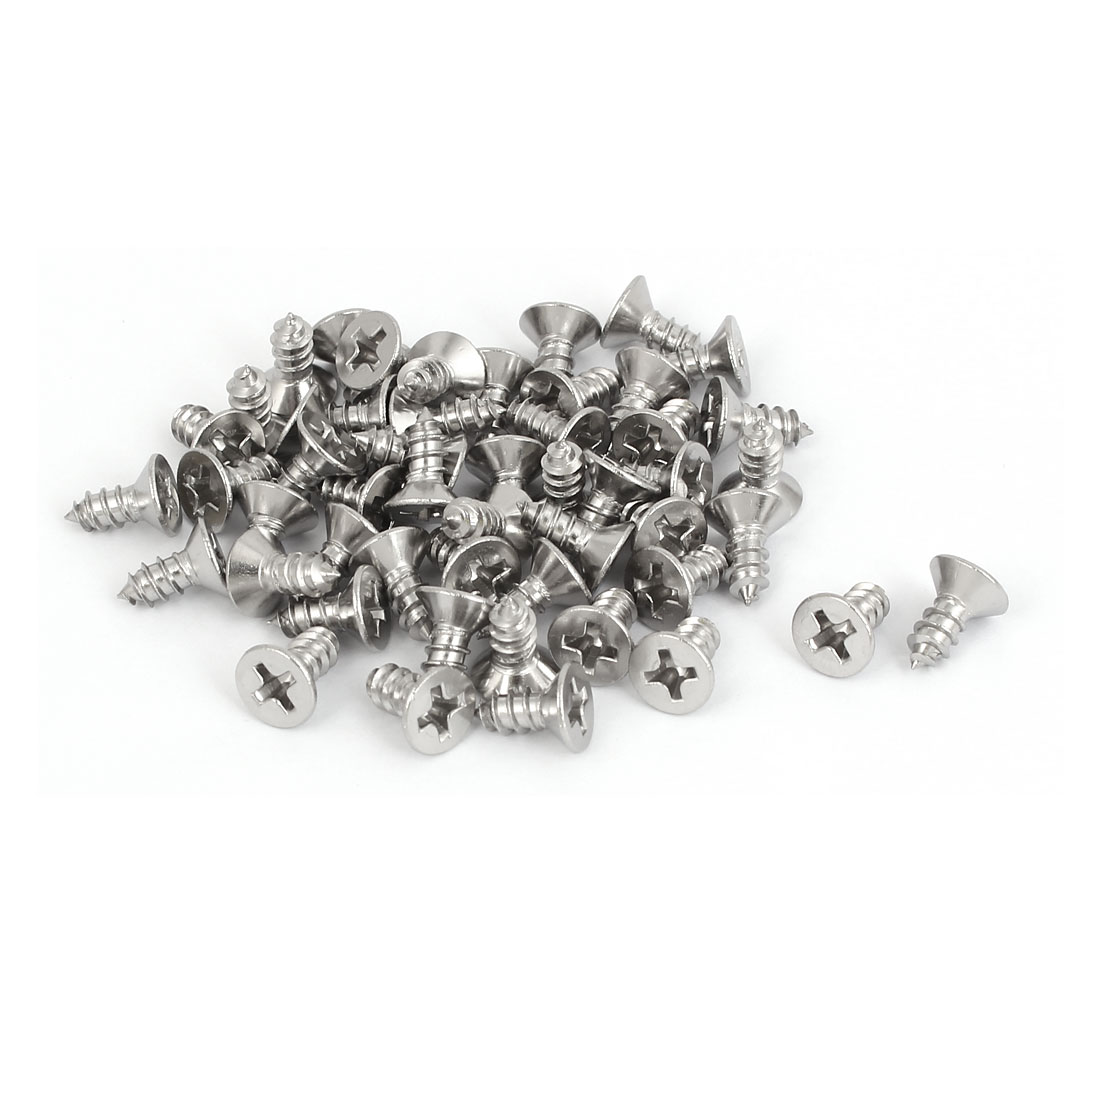 M3.9x9.5mm 316 Stainless Steel Flat Head Phillips Self Tapping Screws 50pcs